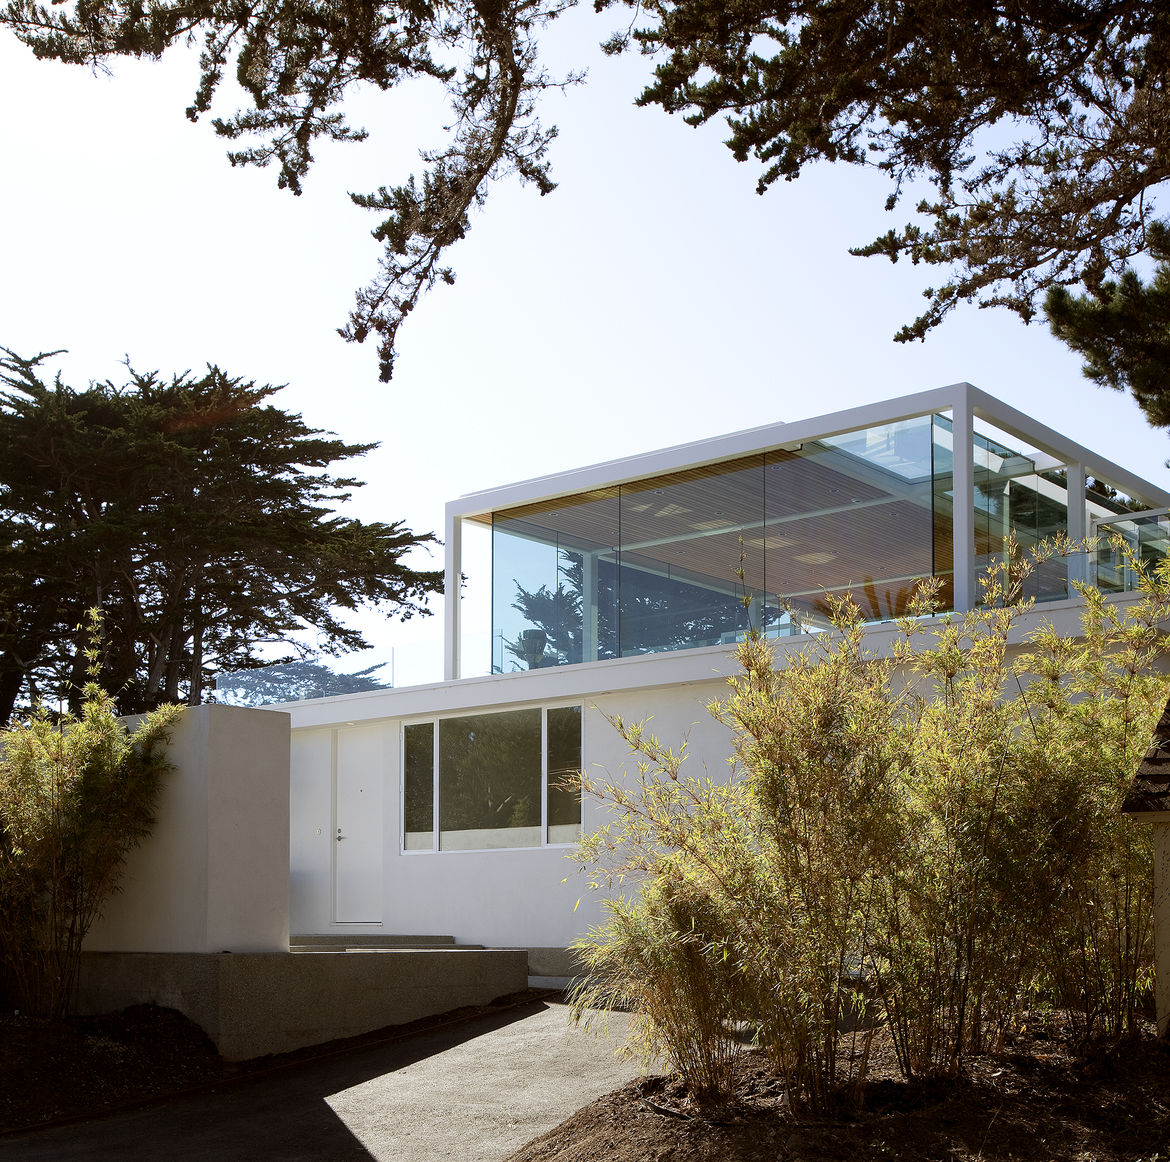 Entrance of Paley House by DYAR Architects and John Thodos in Carmel, California